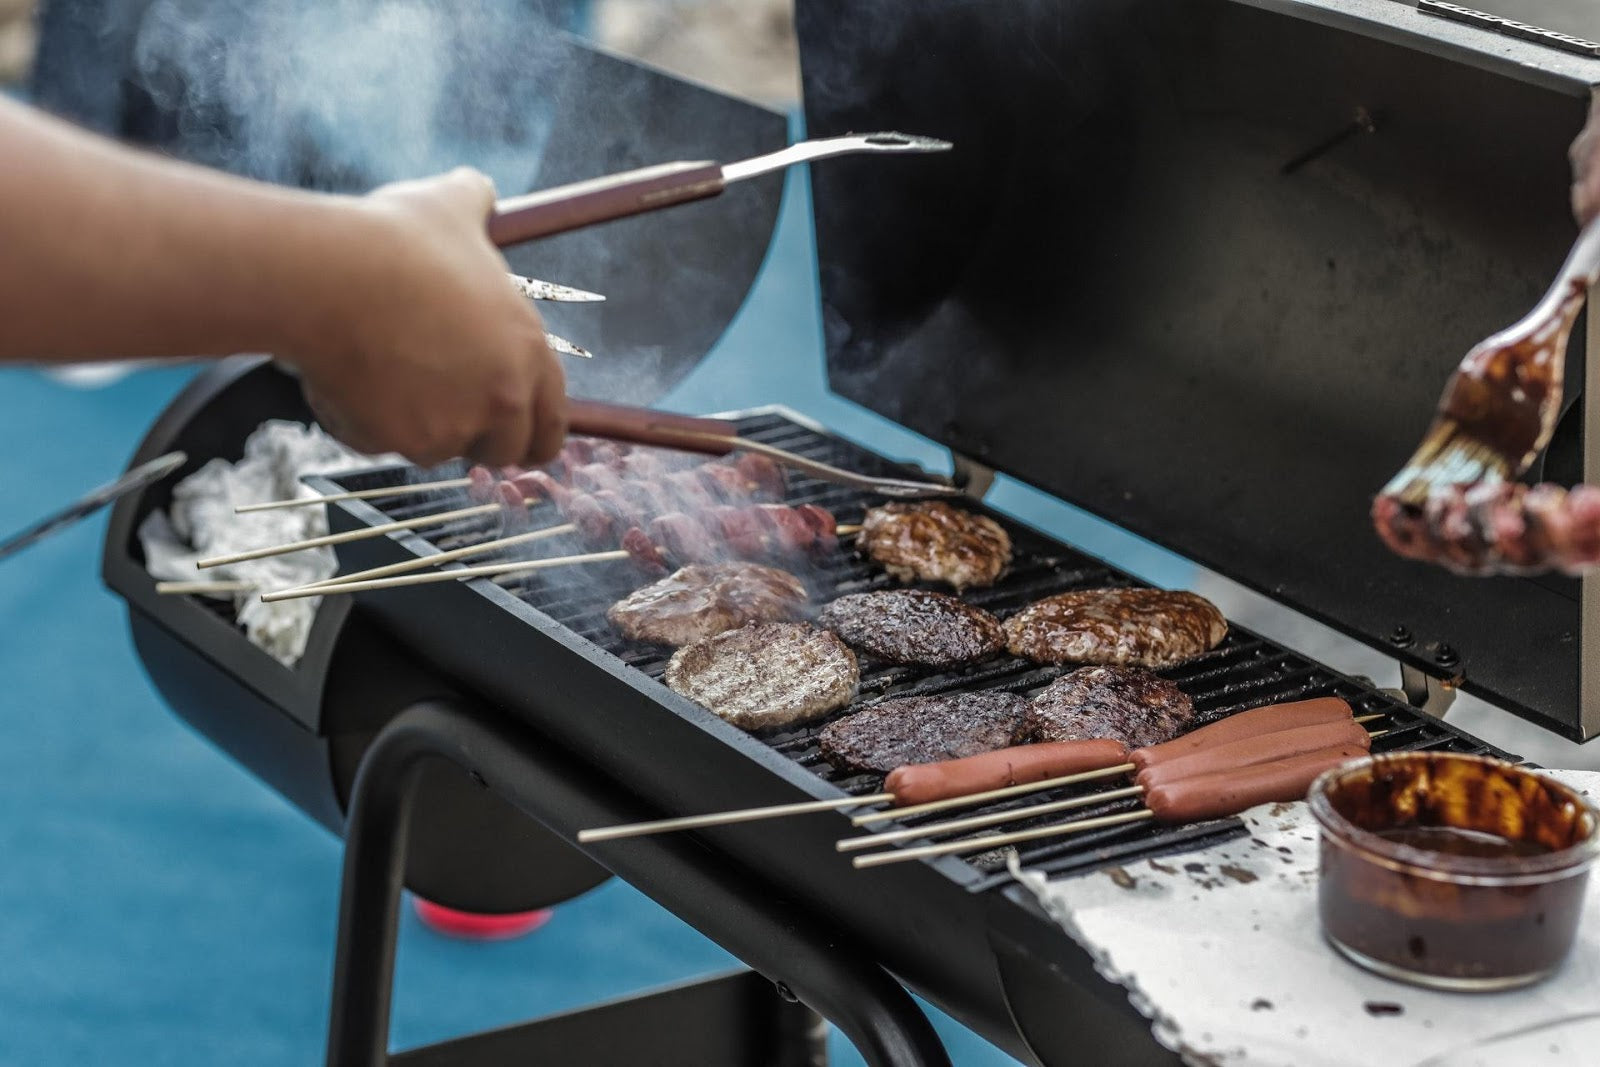 Expert Grill Tips to Help You Master Your Next Cookout